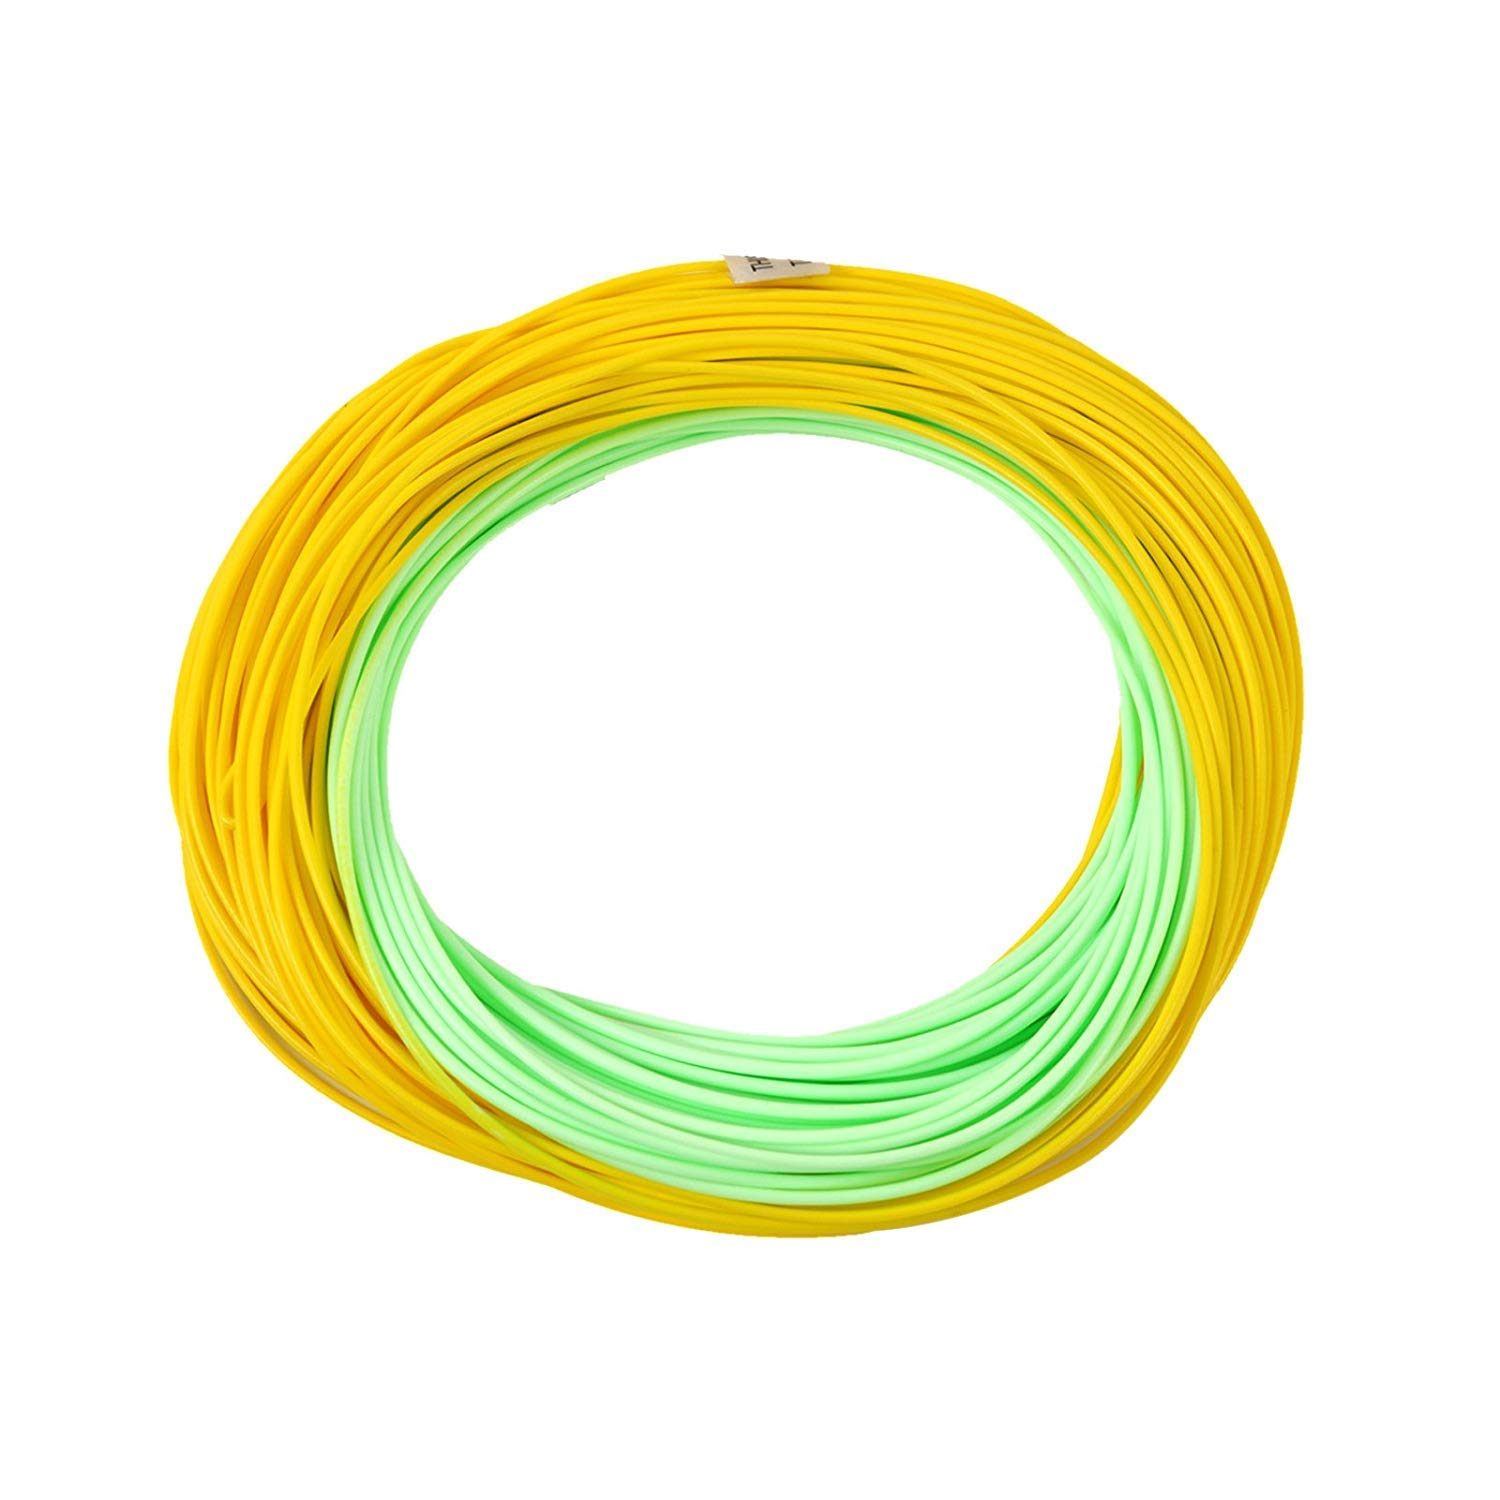 MAXIMUMCATCH Special Design Fly Fishing Line, Floating Series Fly Line